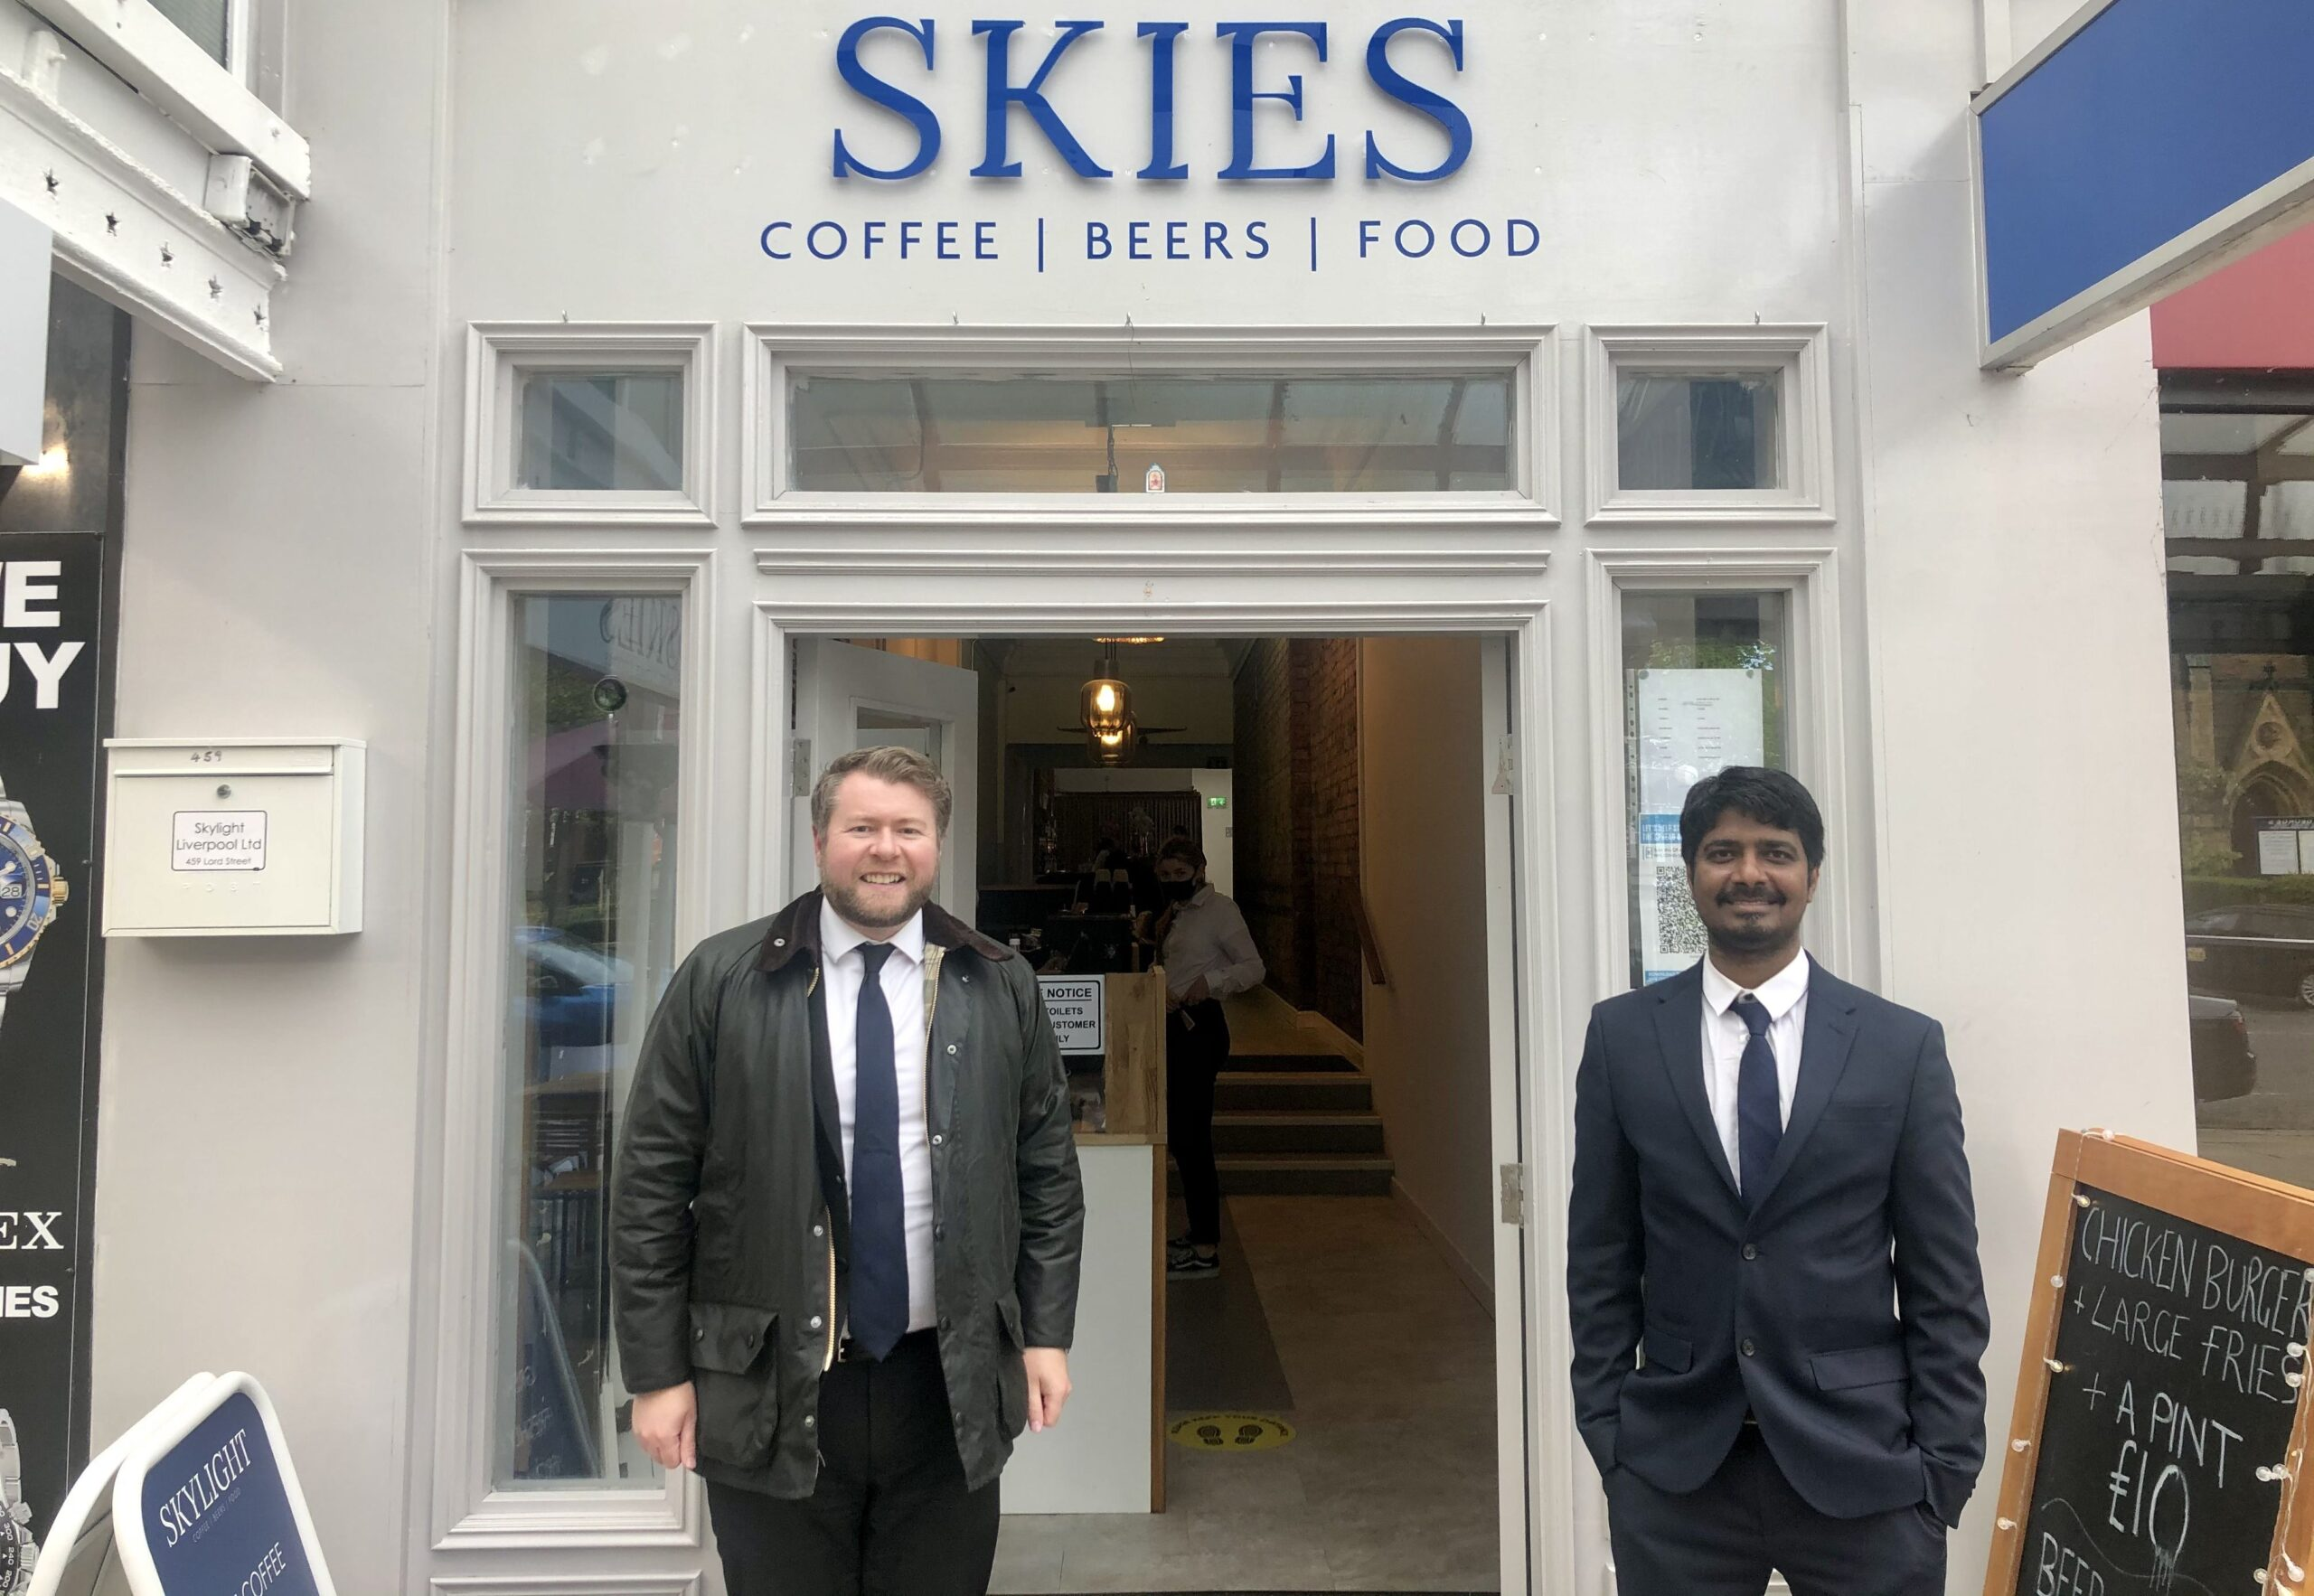 Southport MP Damien Moore was invited to officially open the new outside area at Skies on Lord Street in Southport. Photo by VAMPHire.comSouthport MP Damien Moore was invited to officially open the new outside area at Skies on Lord Street in Southport. Photo by VAMPHire.com